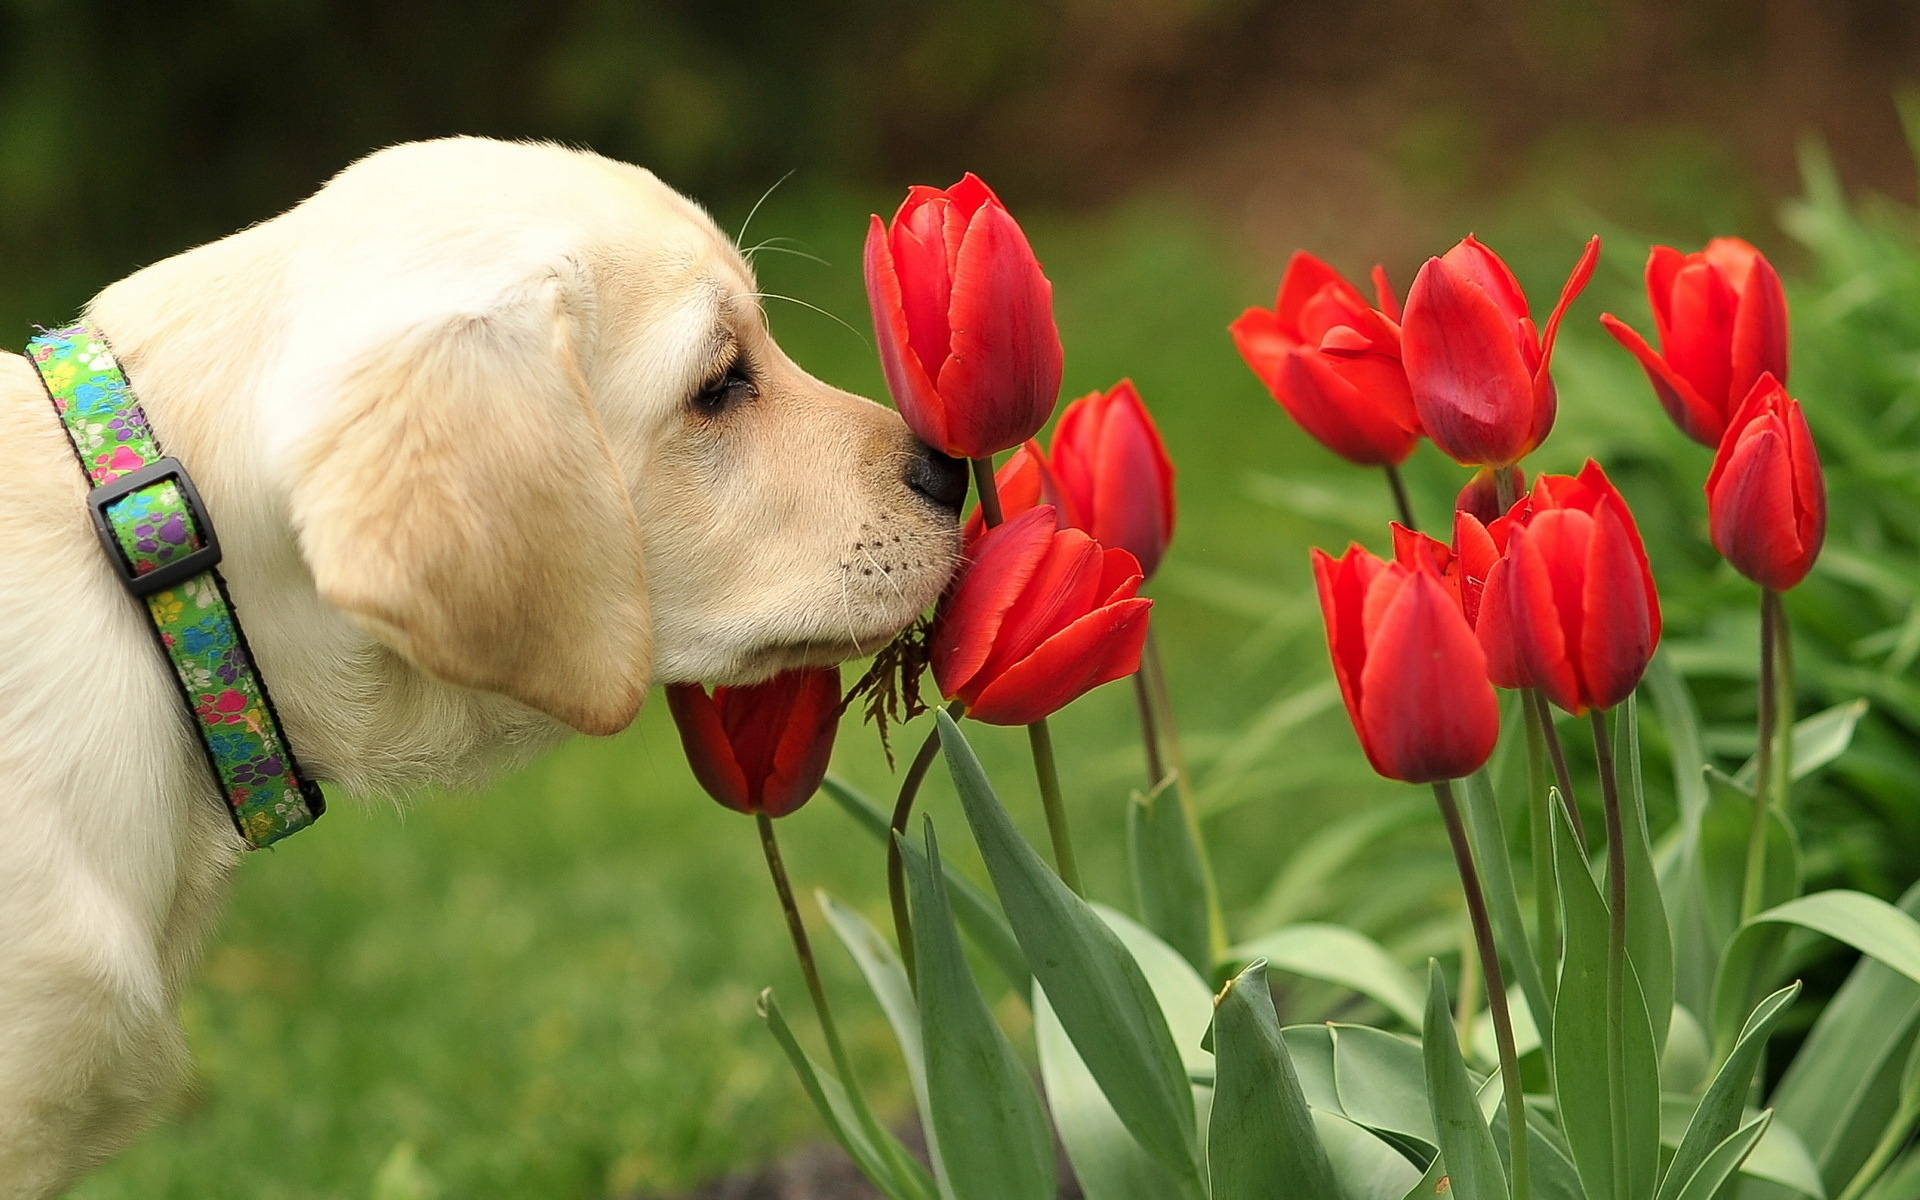 Dog and red tulips 1920 x 1200 Animals Photography MIRIADNA 1920x1200